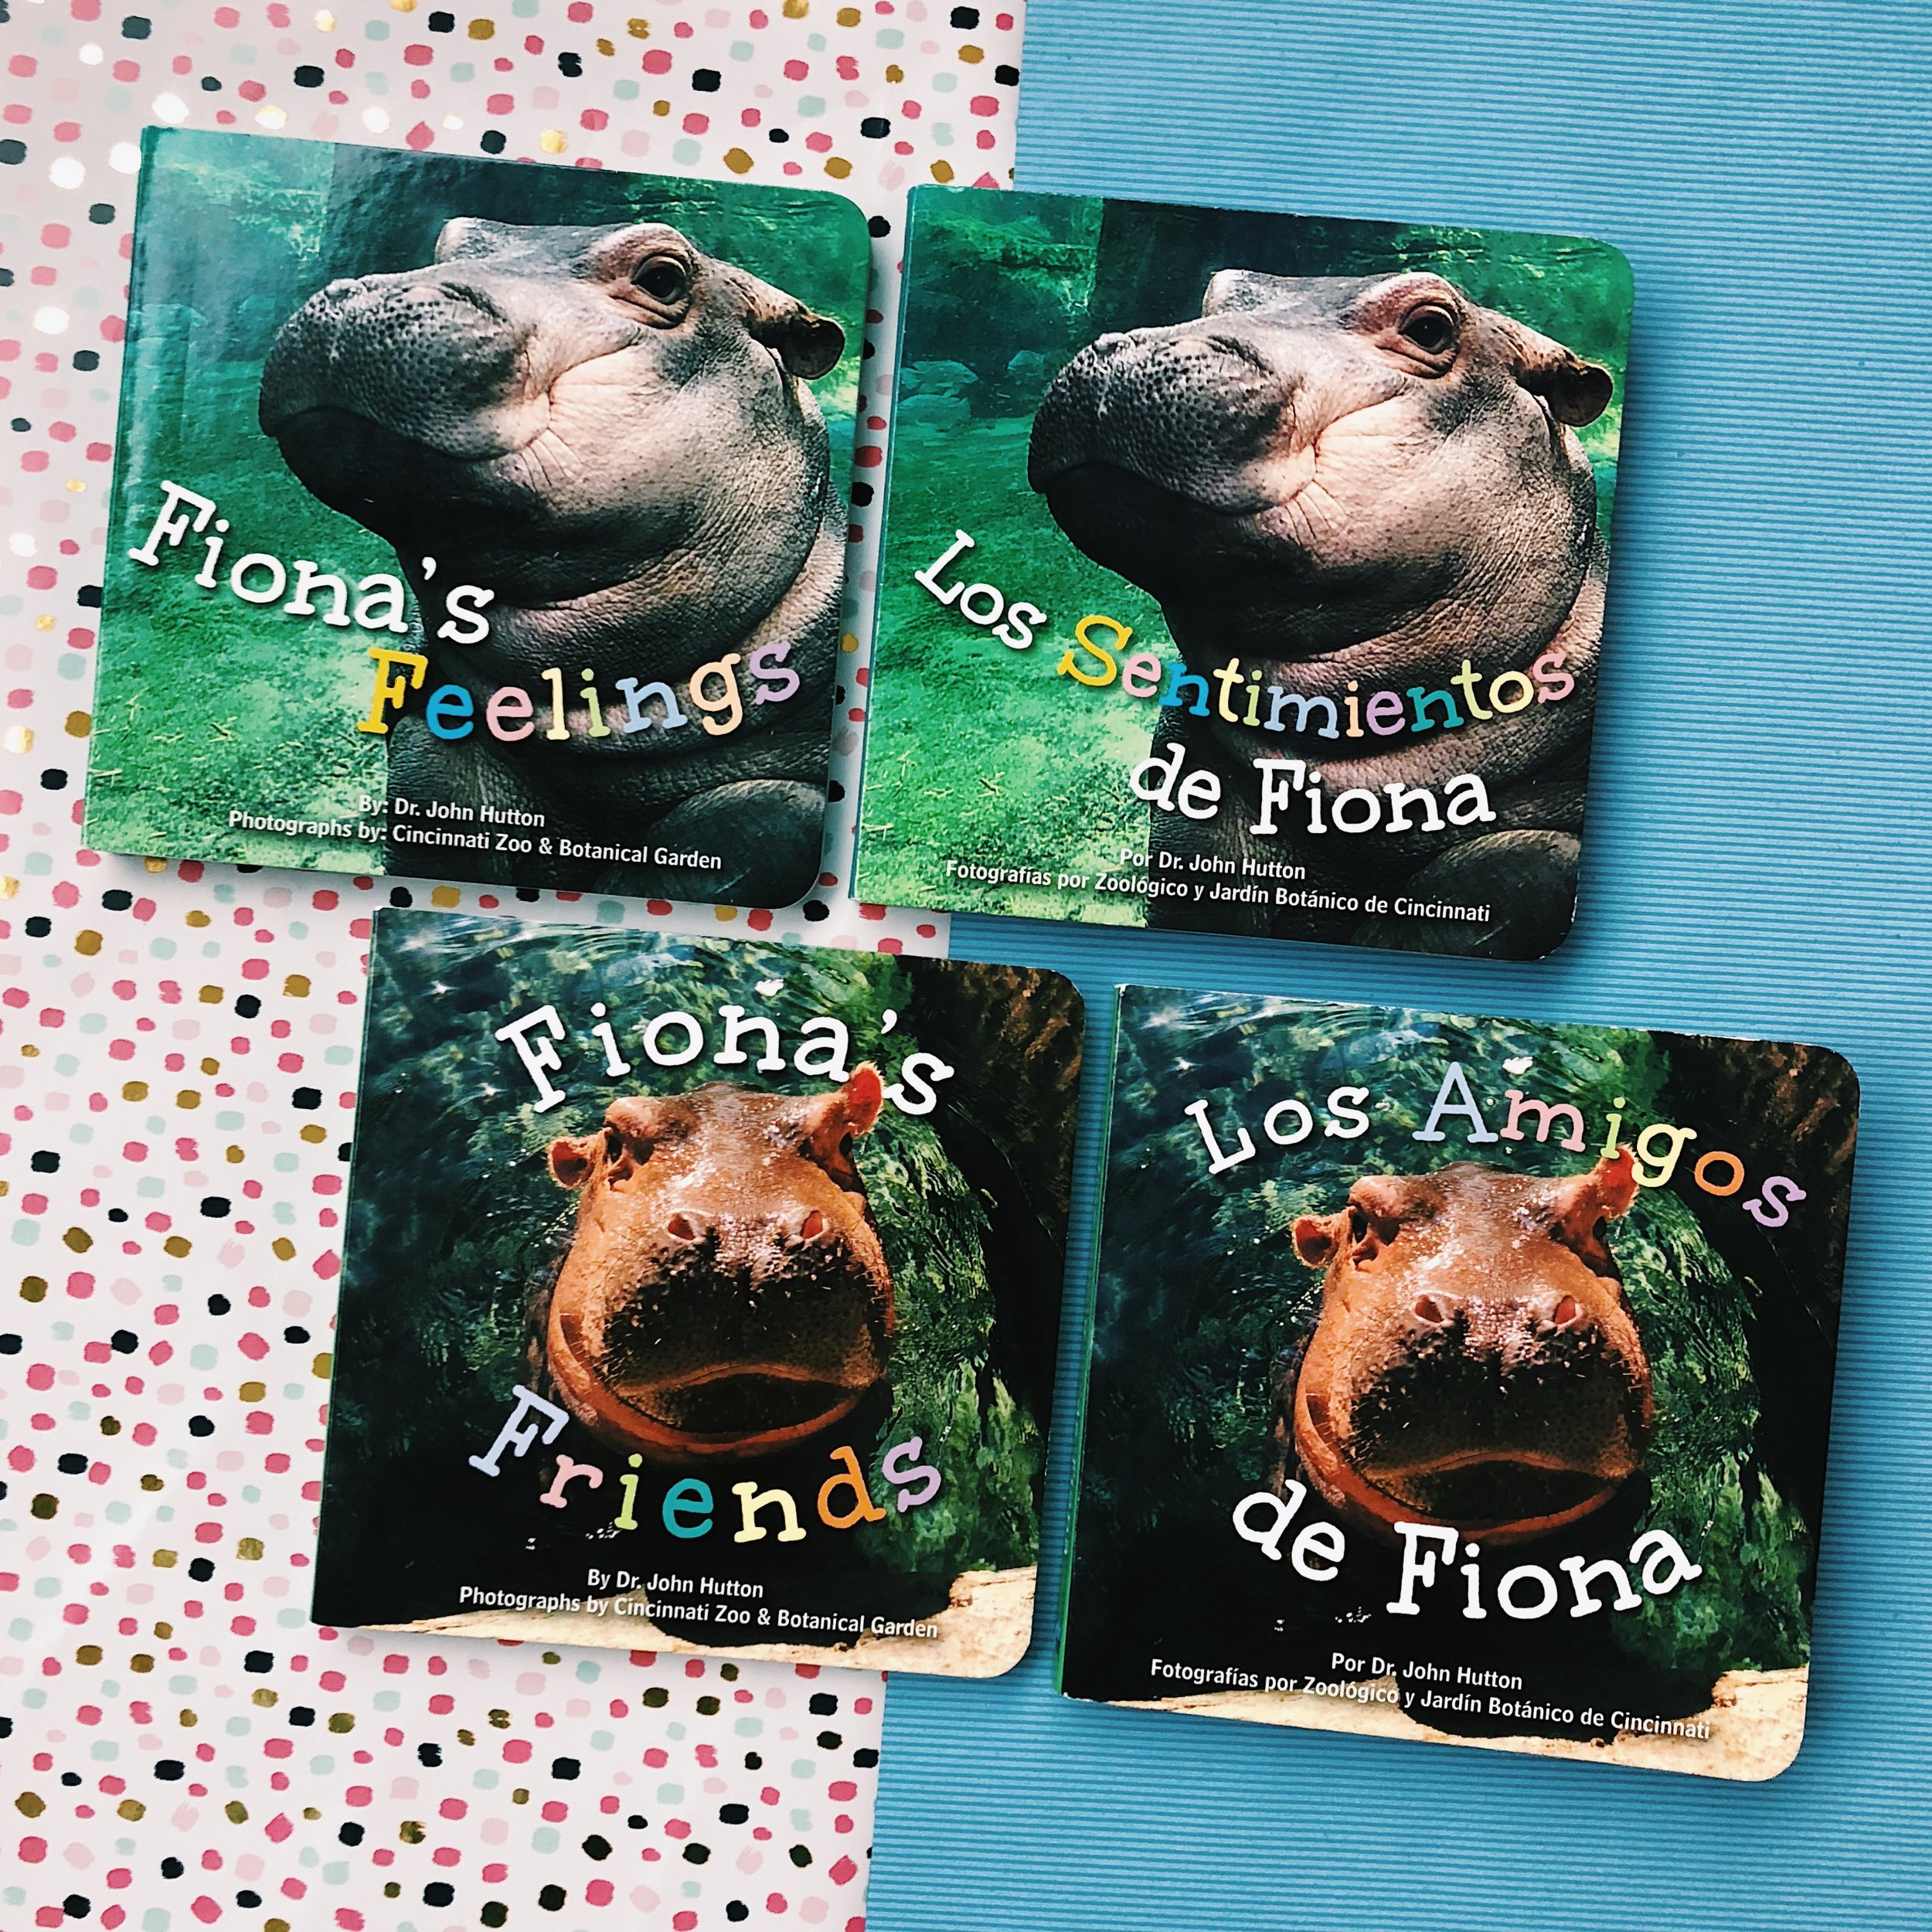 Fiona's Feelings   and   Fiona's Friends   written by Dr. John Hutton and photographs provided by the Cincinnati Zoo & Botanical Garden ;   Los Sentimientos de Fiona   and   Los Amigos de Fiona   on sale spring 2019